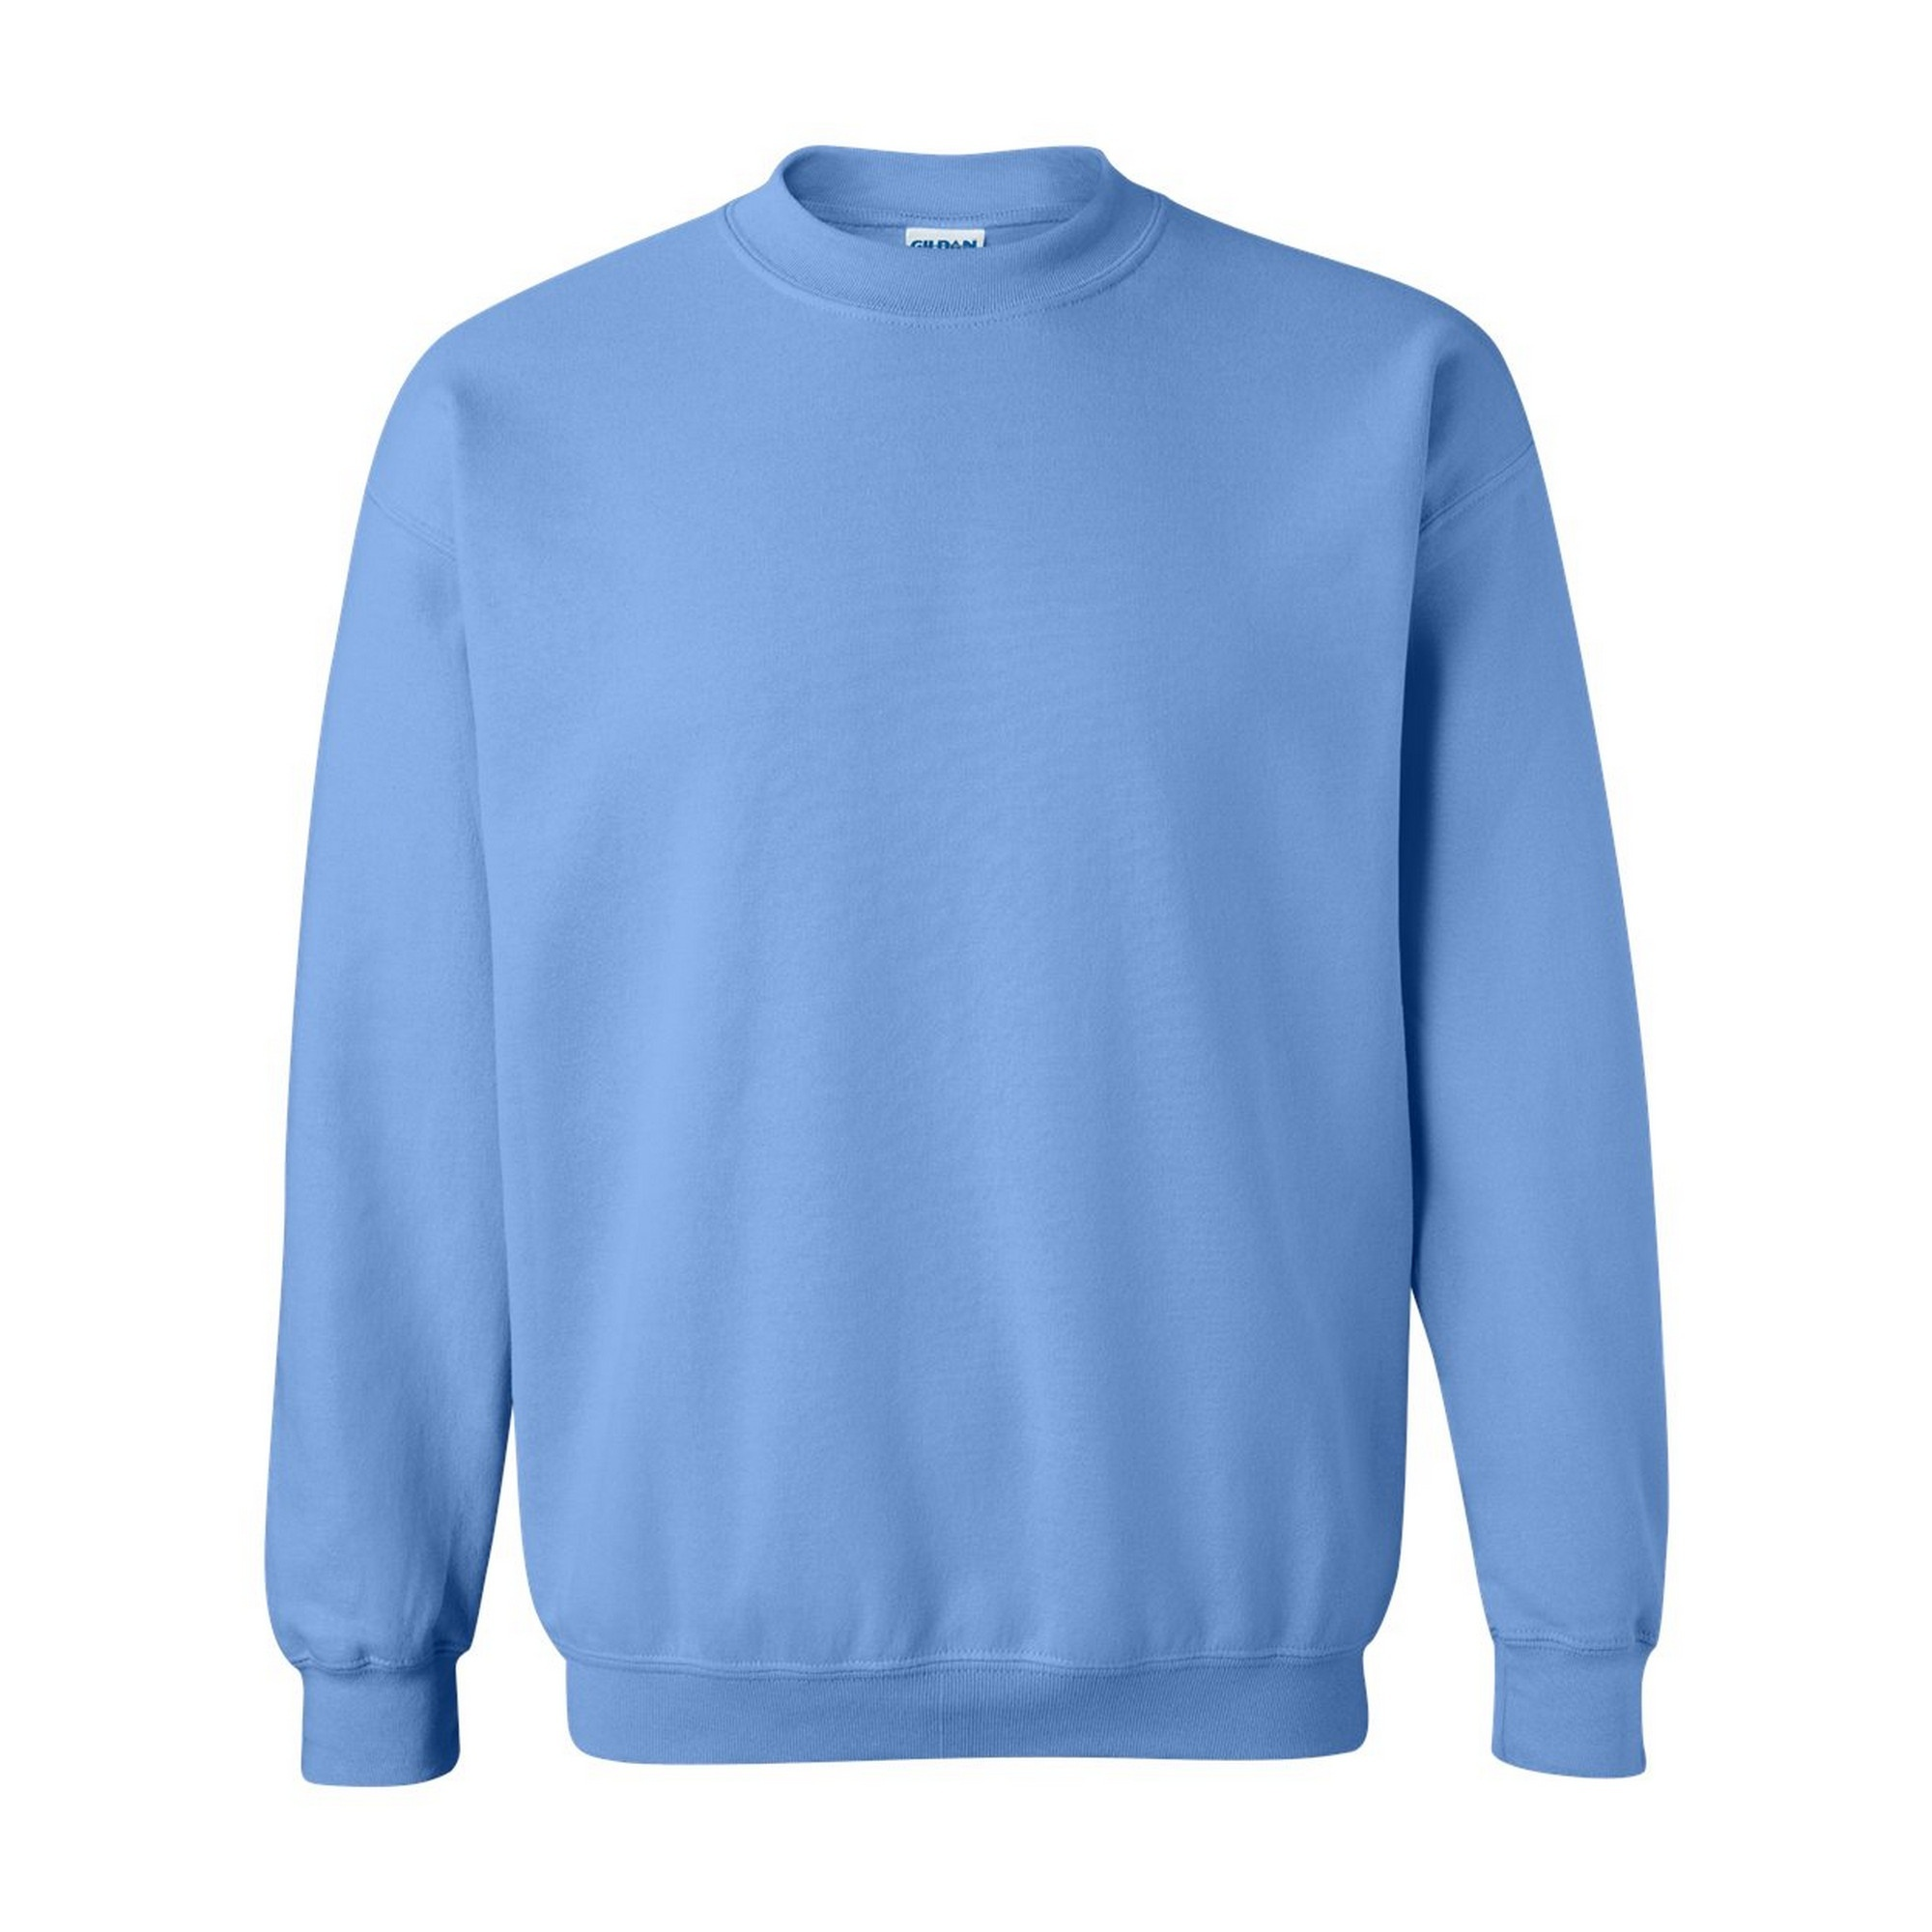 Gildan Heavy Blend Unisex Adult Mens /Womens Crewneck Plain ...